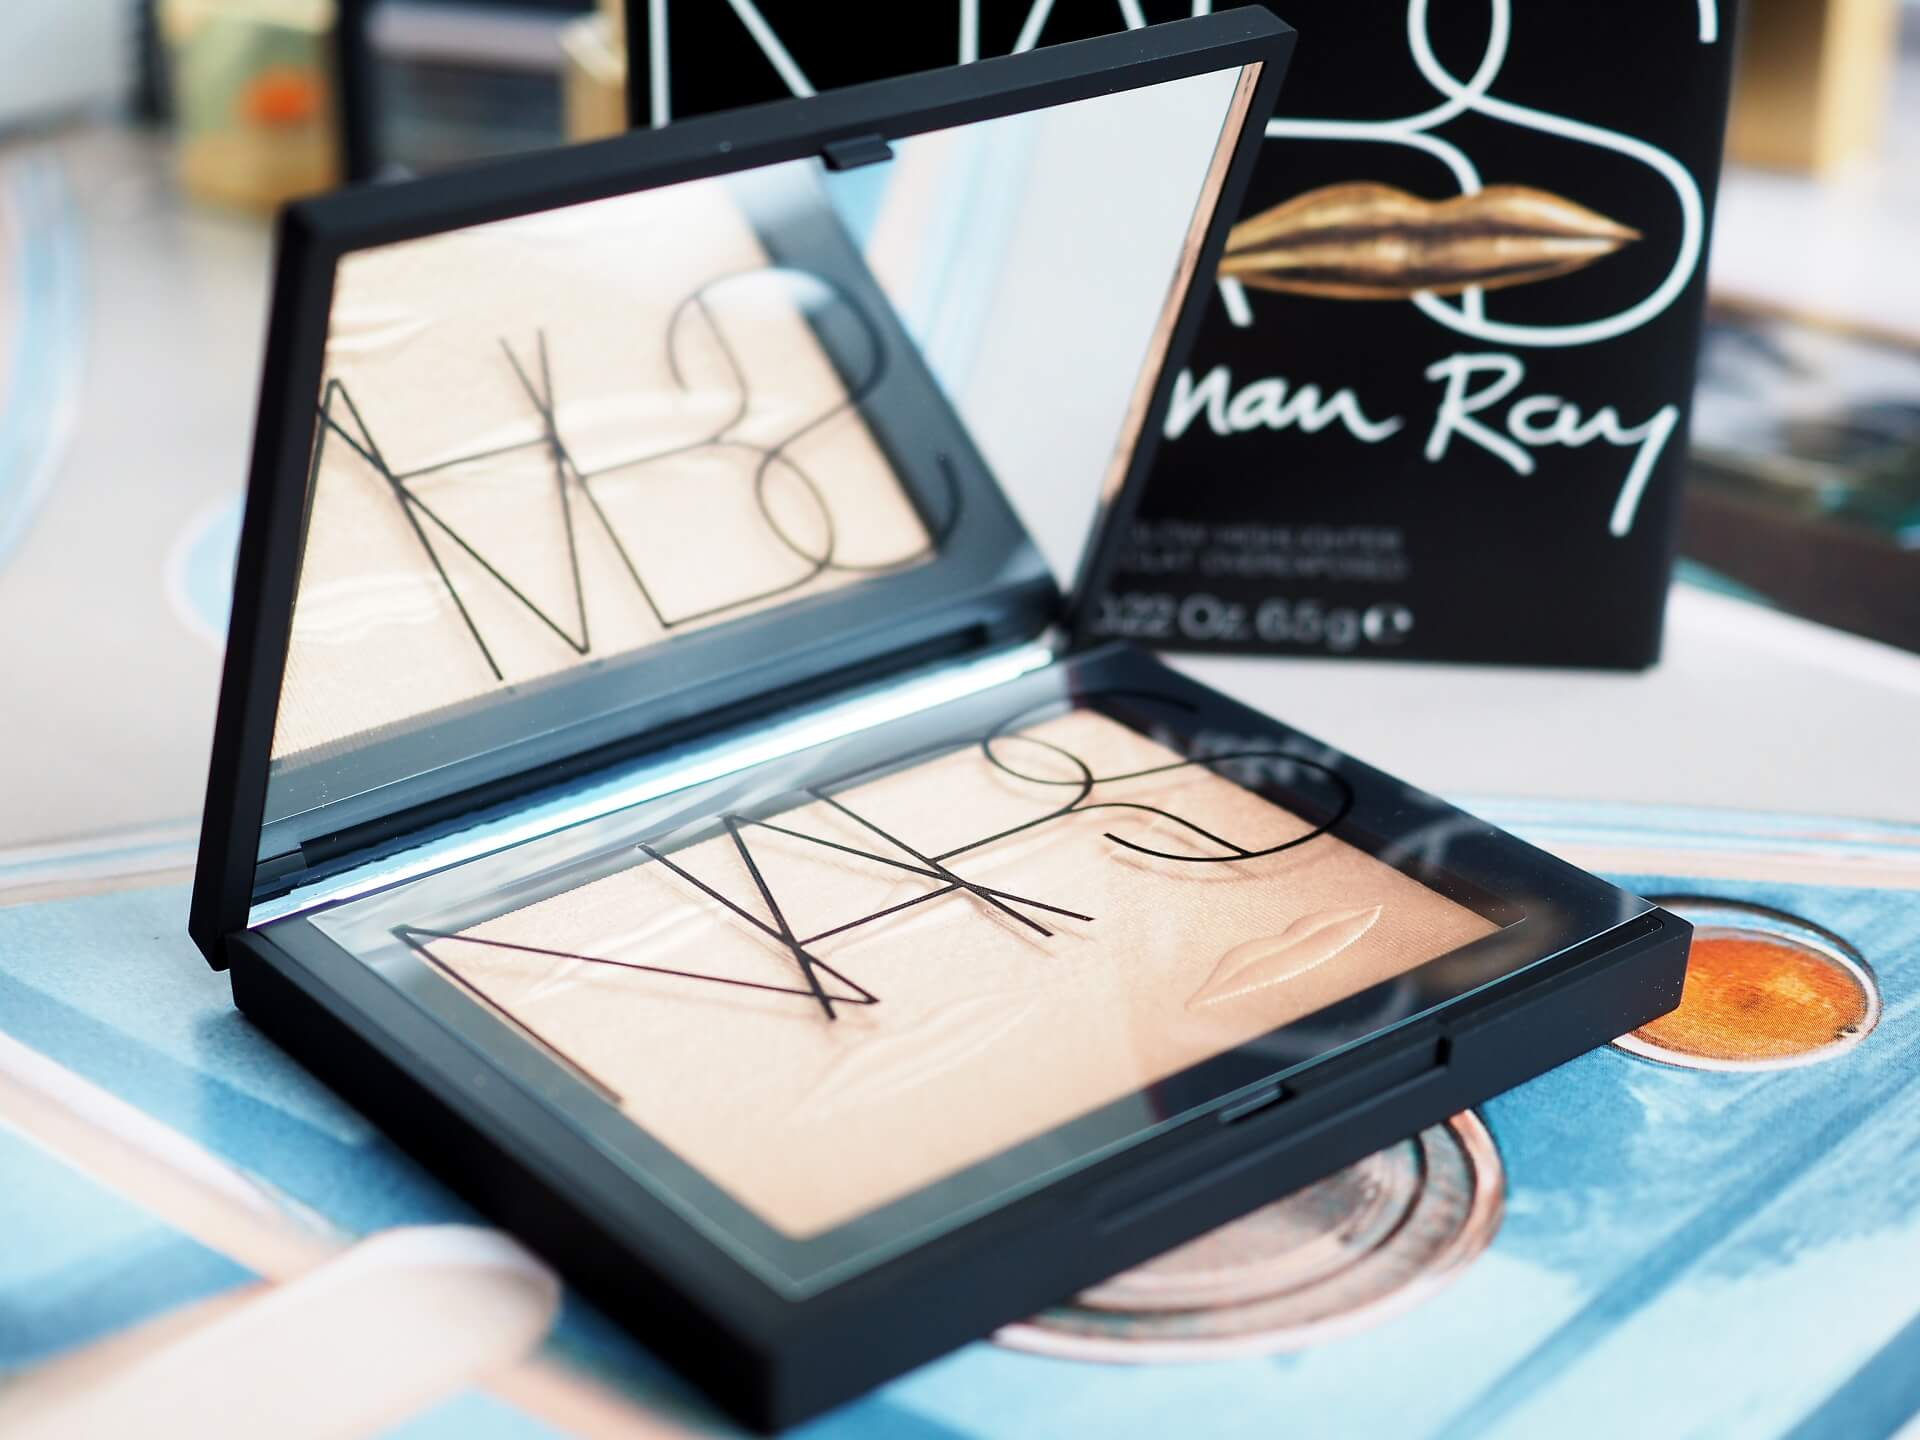 Nars Man Ray Double Take Highlighter